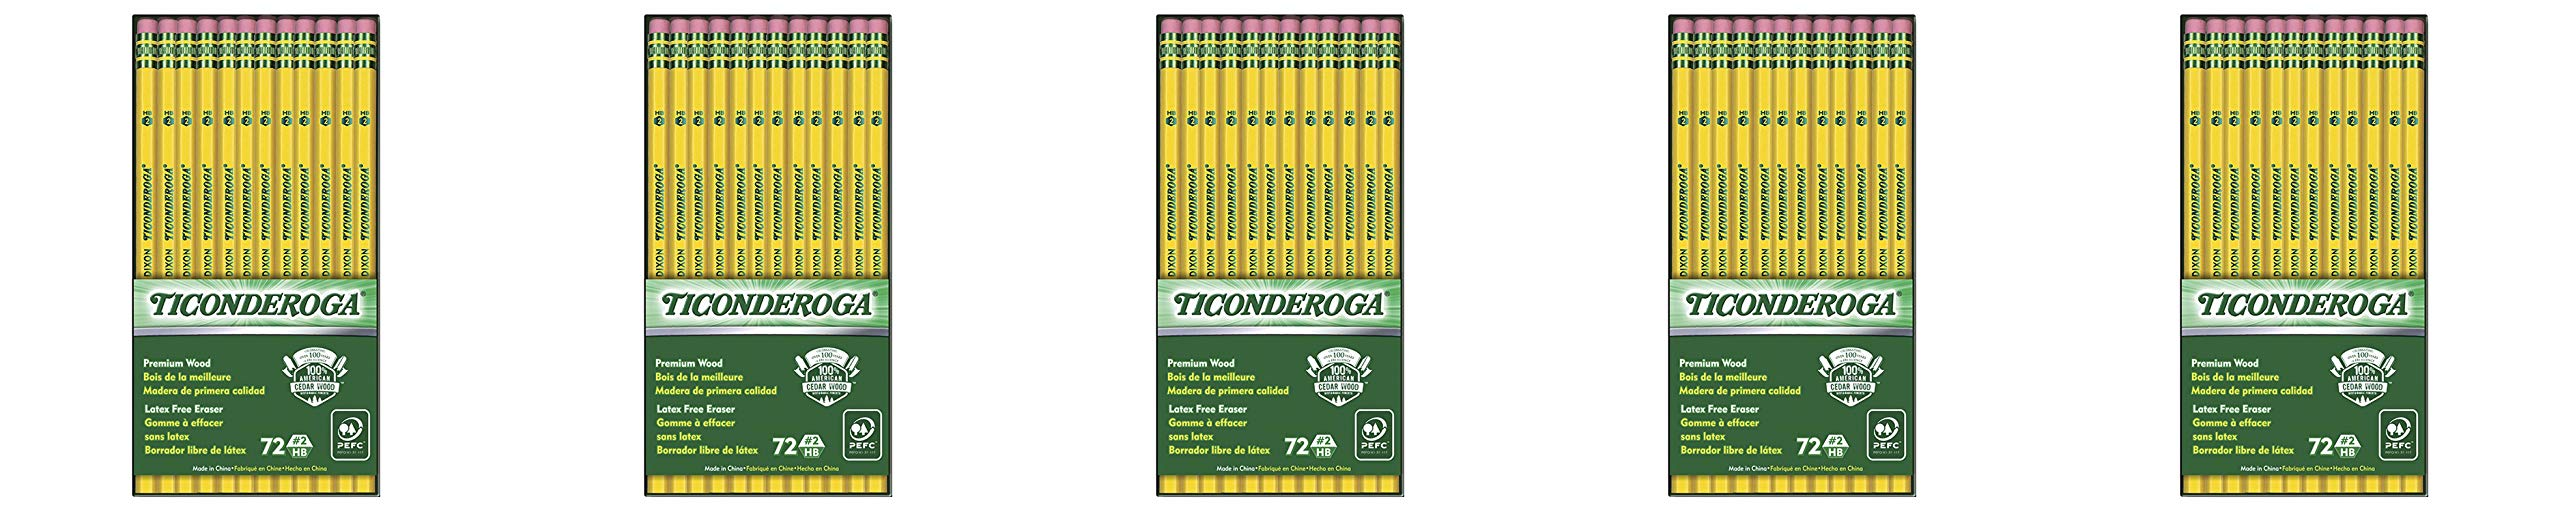 Ticonderoga Wood-Cased Graphite Pencils, 2 HB Soft, With Eraser, Yellow, 72 Count (33904) 5 Pack by Dixon (Image #1)